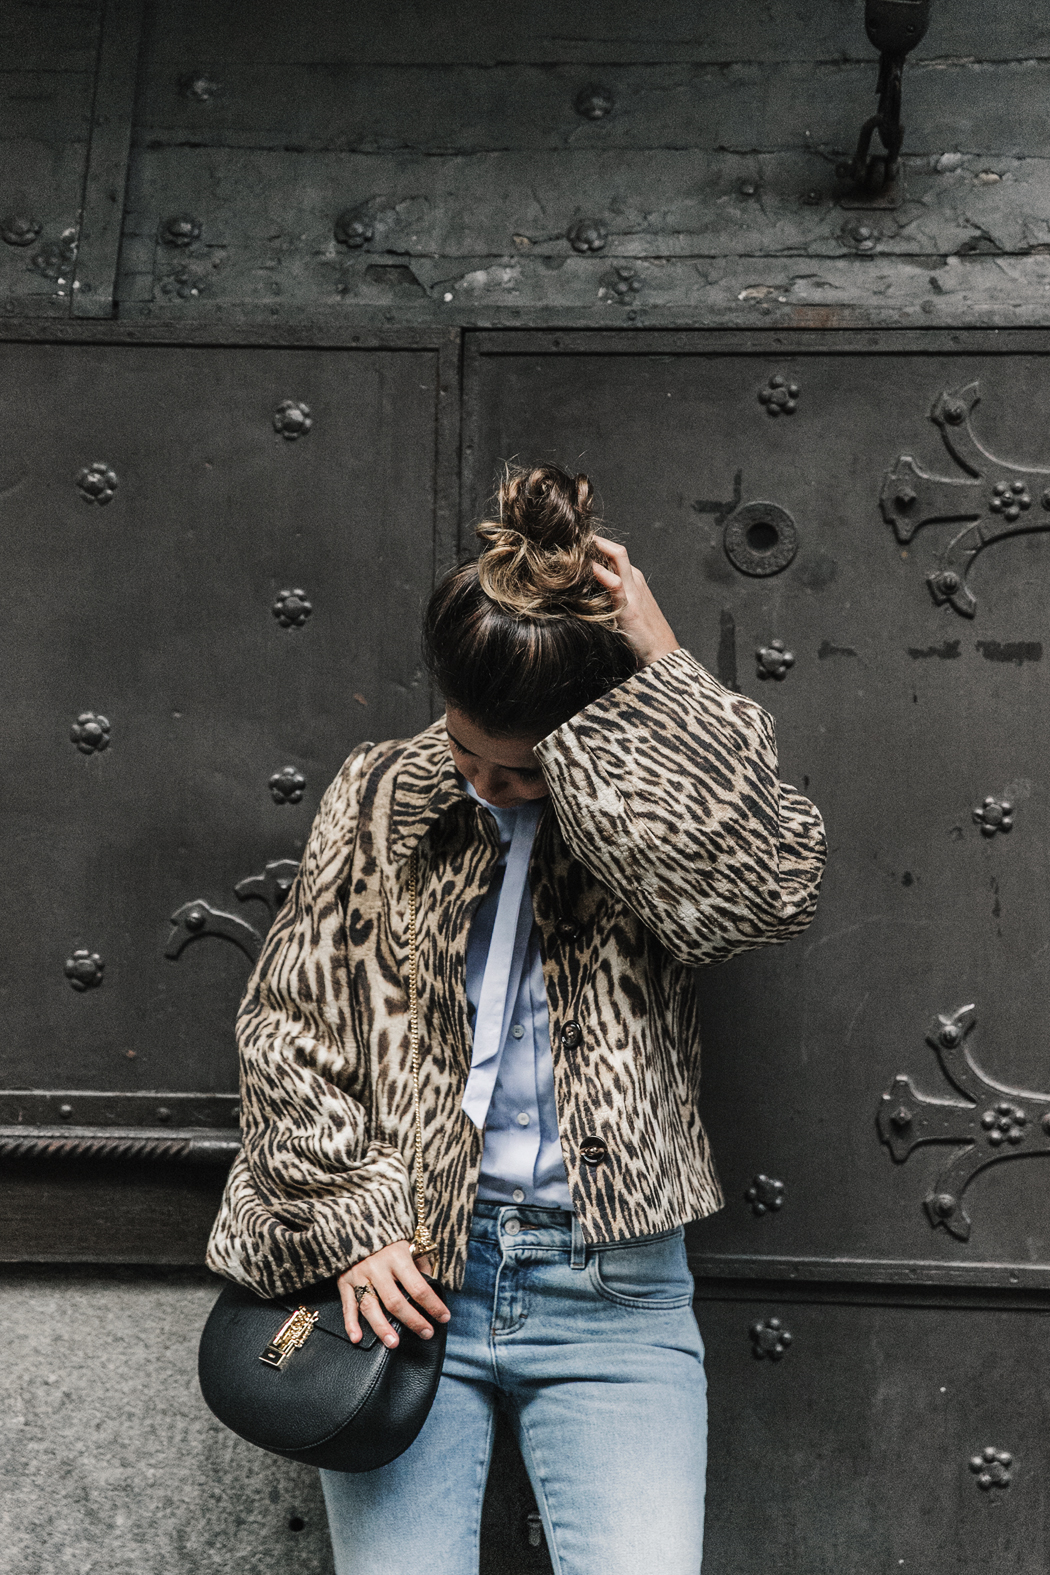 Firenze4Ever-Luisa_VIa_Roma-Chloe_Leopard_Jacket-Light_Blue_Blouse-Gucci_Jeans-_Look-Drew_Bag-Outfit-Florence-Street_Style-